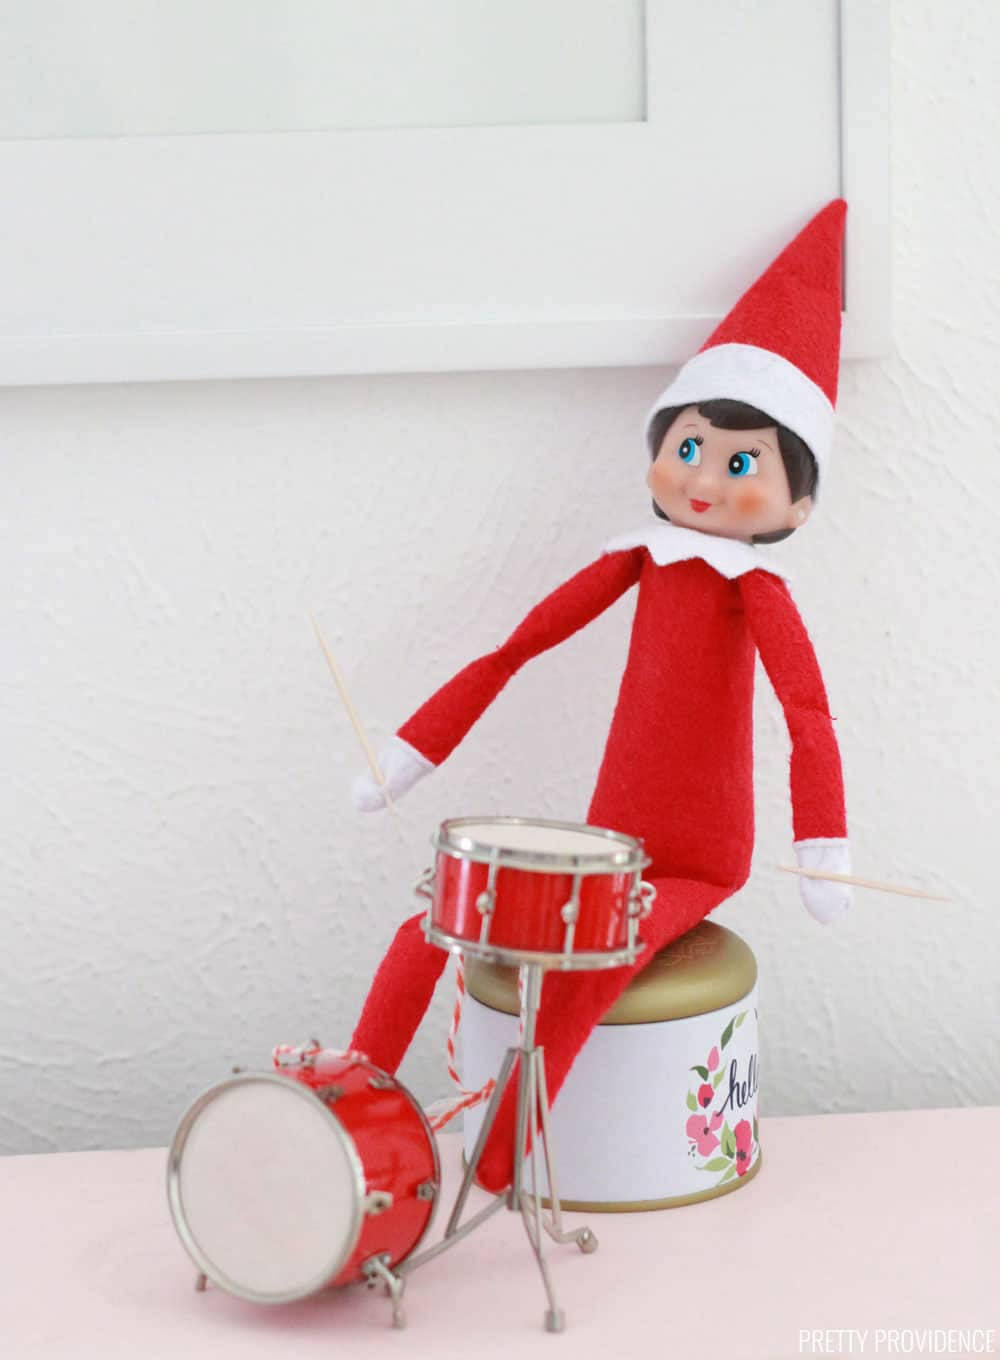 Elf on the Shelf Props - Drums